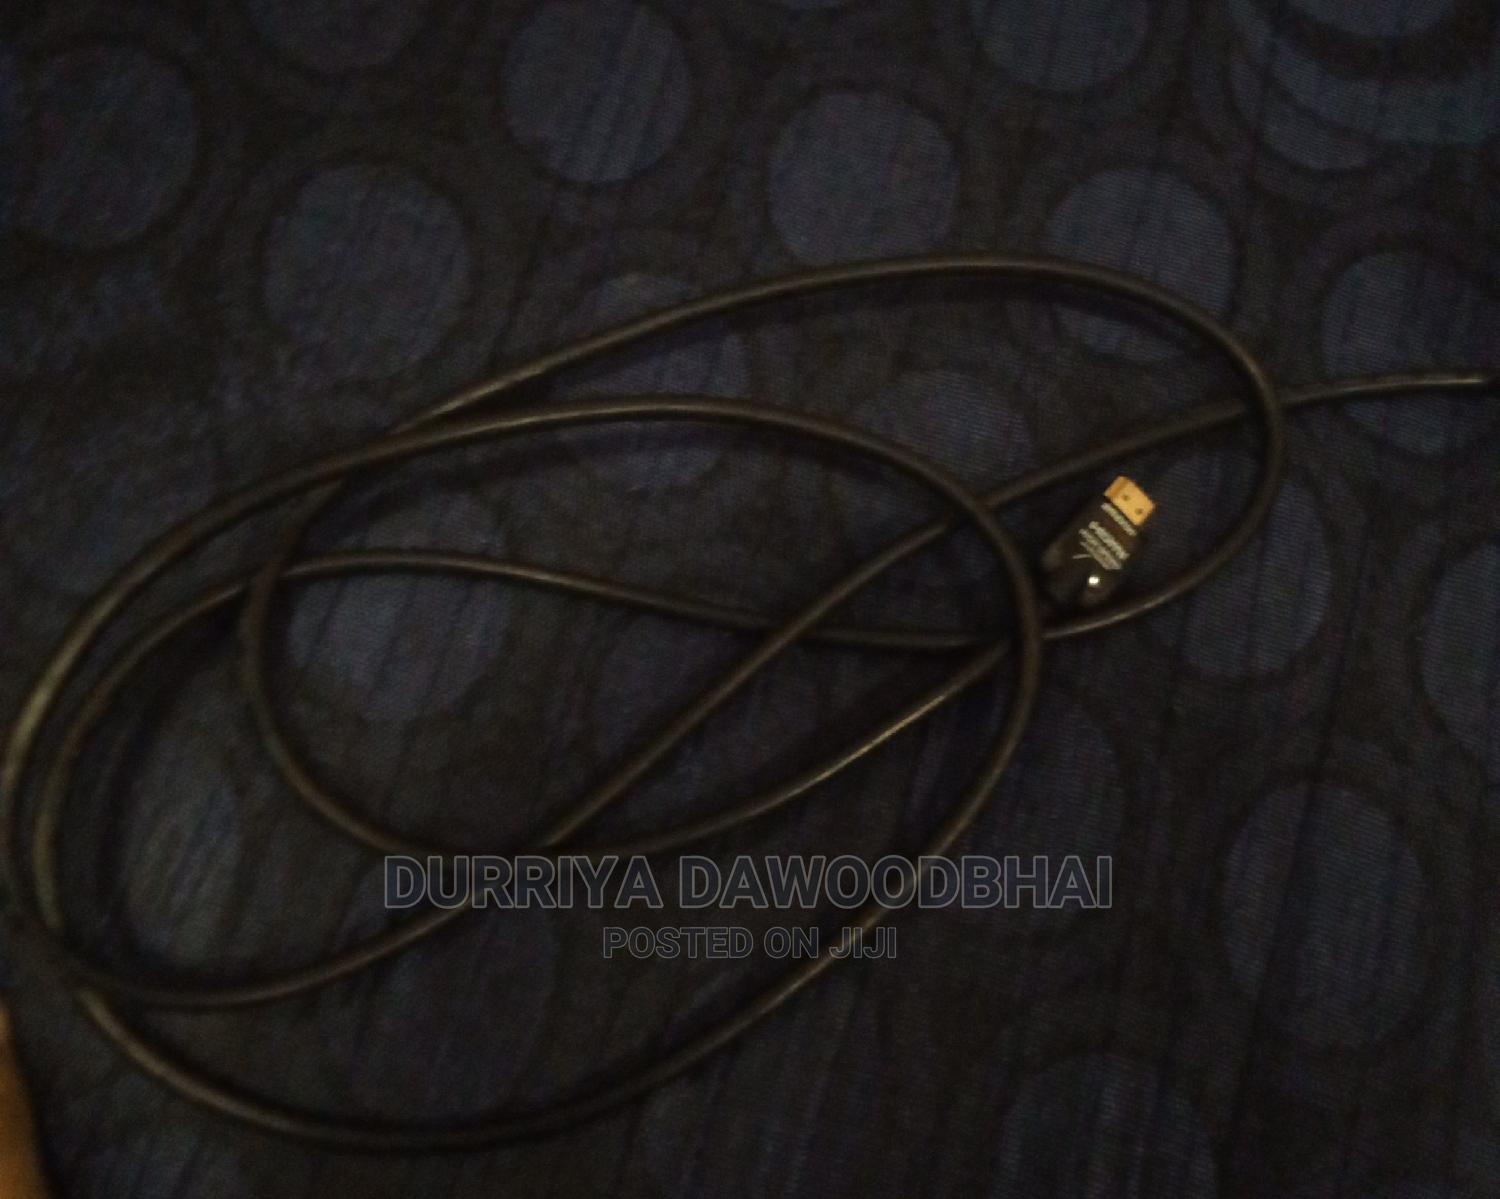 HDMI Cable for Ps3